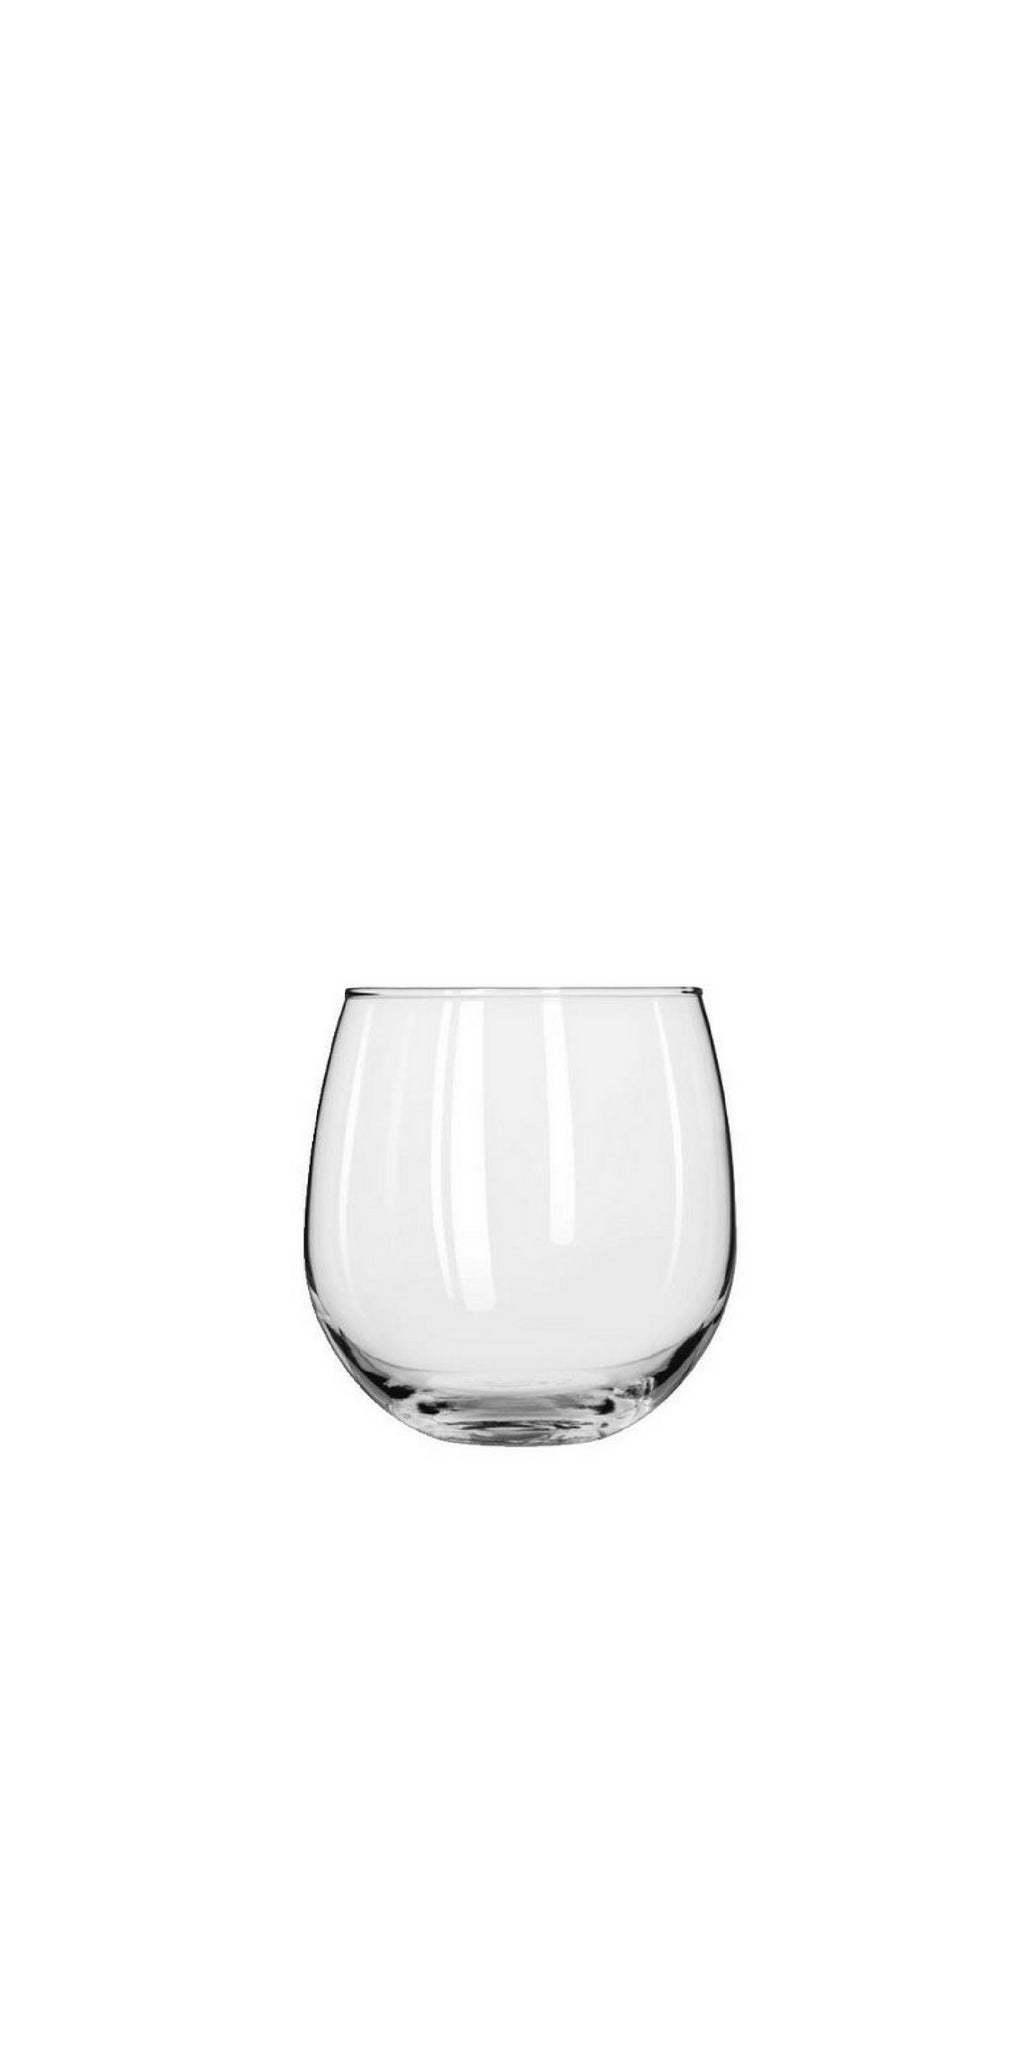 Glass - Stemless